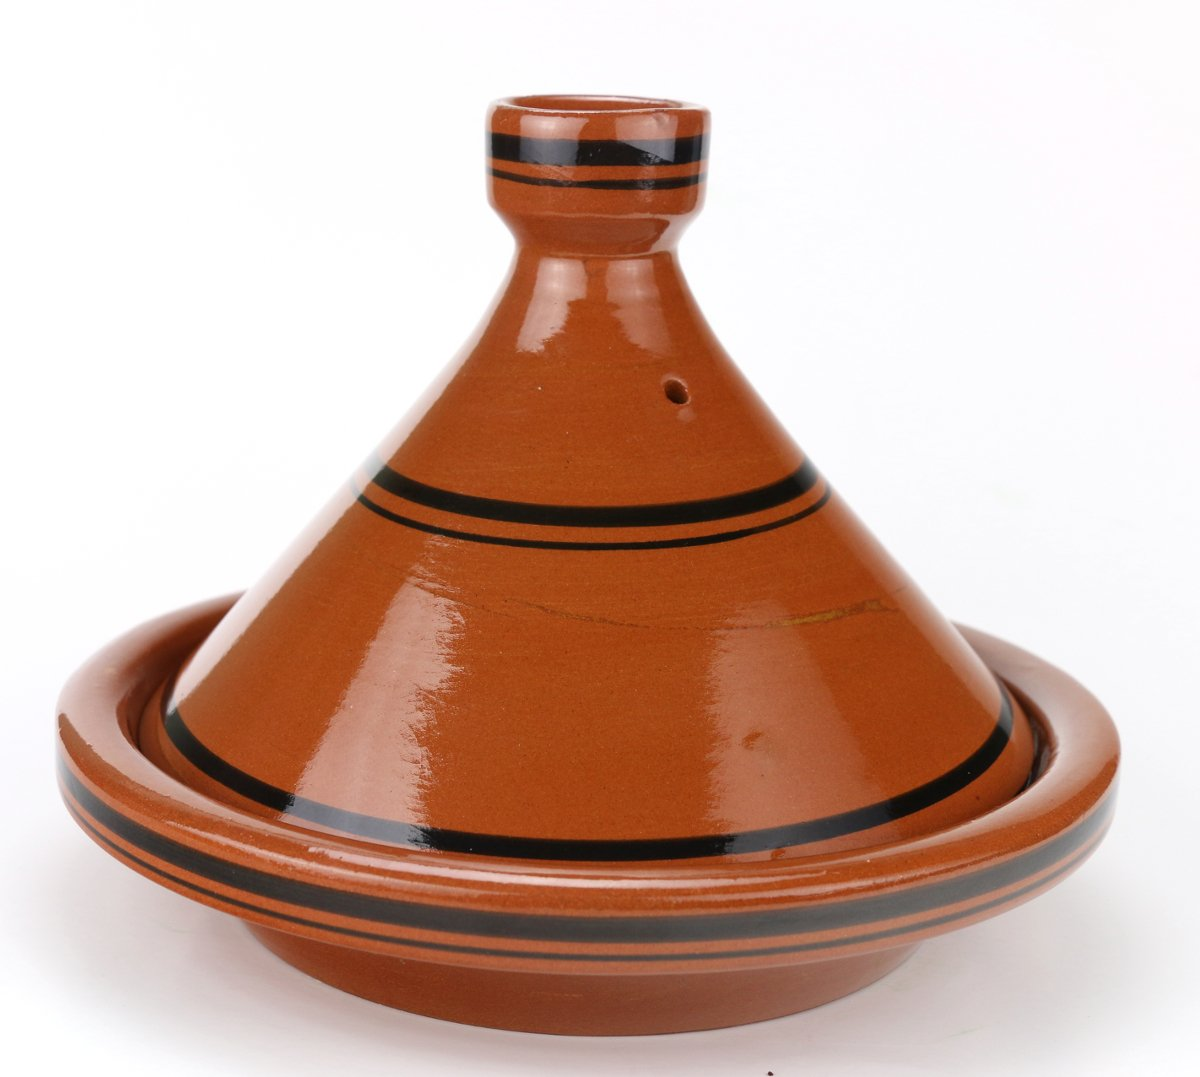 Tagine Cooking Slaoui Large 30cm By Zamouri Spices by Zamouri Spices, an Elbertai Company LLC